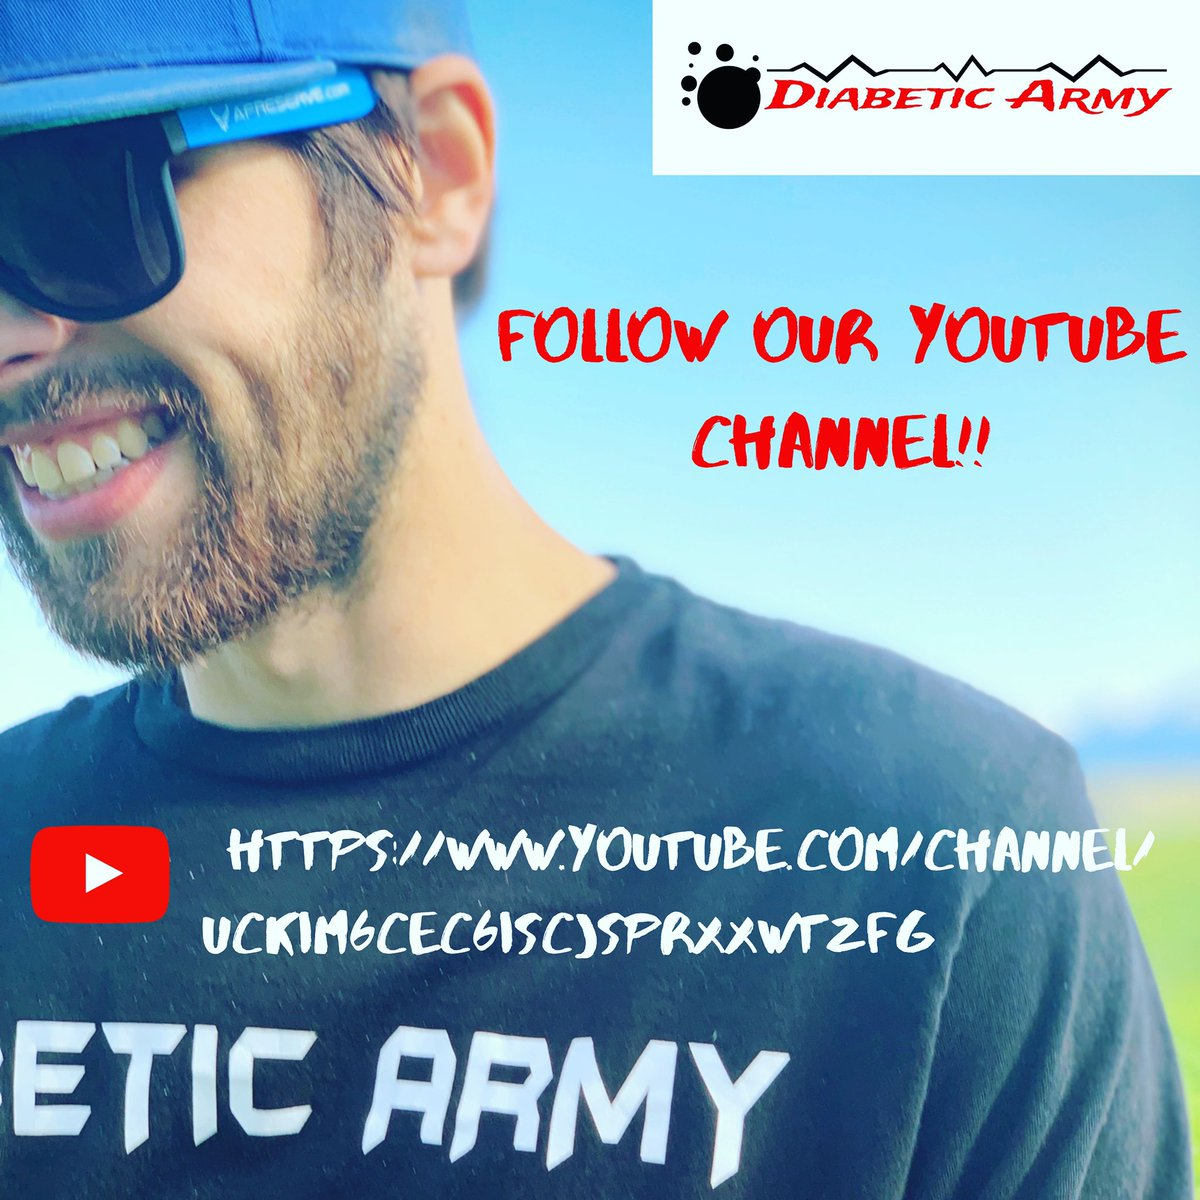 test Twitter Media - Can't wait to show you guys this upcoming video!! https://t.co/uy8GQSD1Sh  BE READY FOR A POWERFUL MESSAGE!  #diabetes #type1 #type1diabetes #T1D #type2 #youtube #channel #powerful #messages  #diabeticarmy https://t.co/HqPYVLGXXu